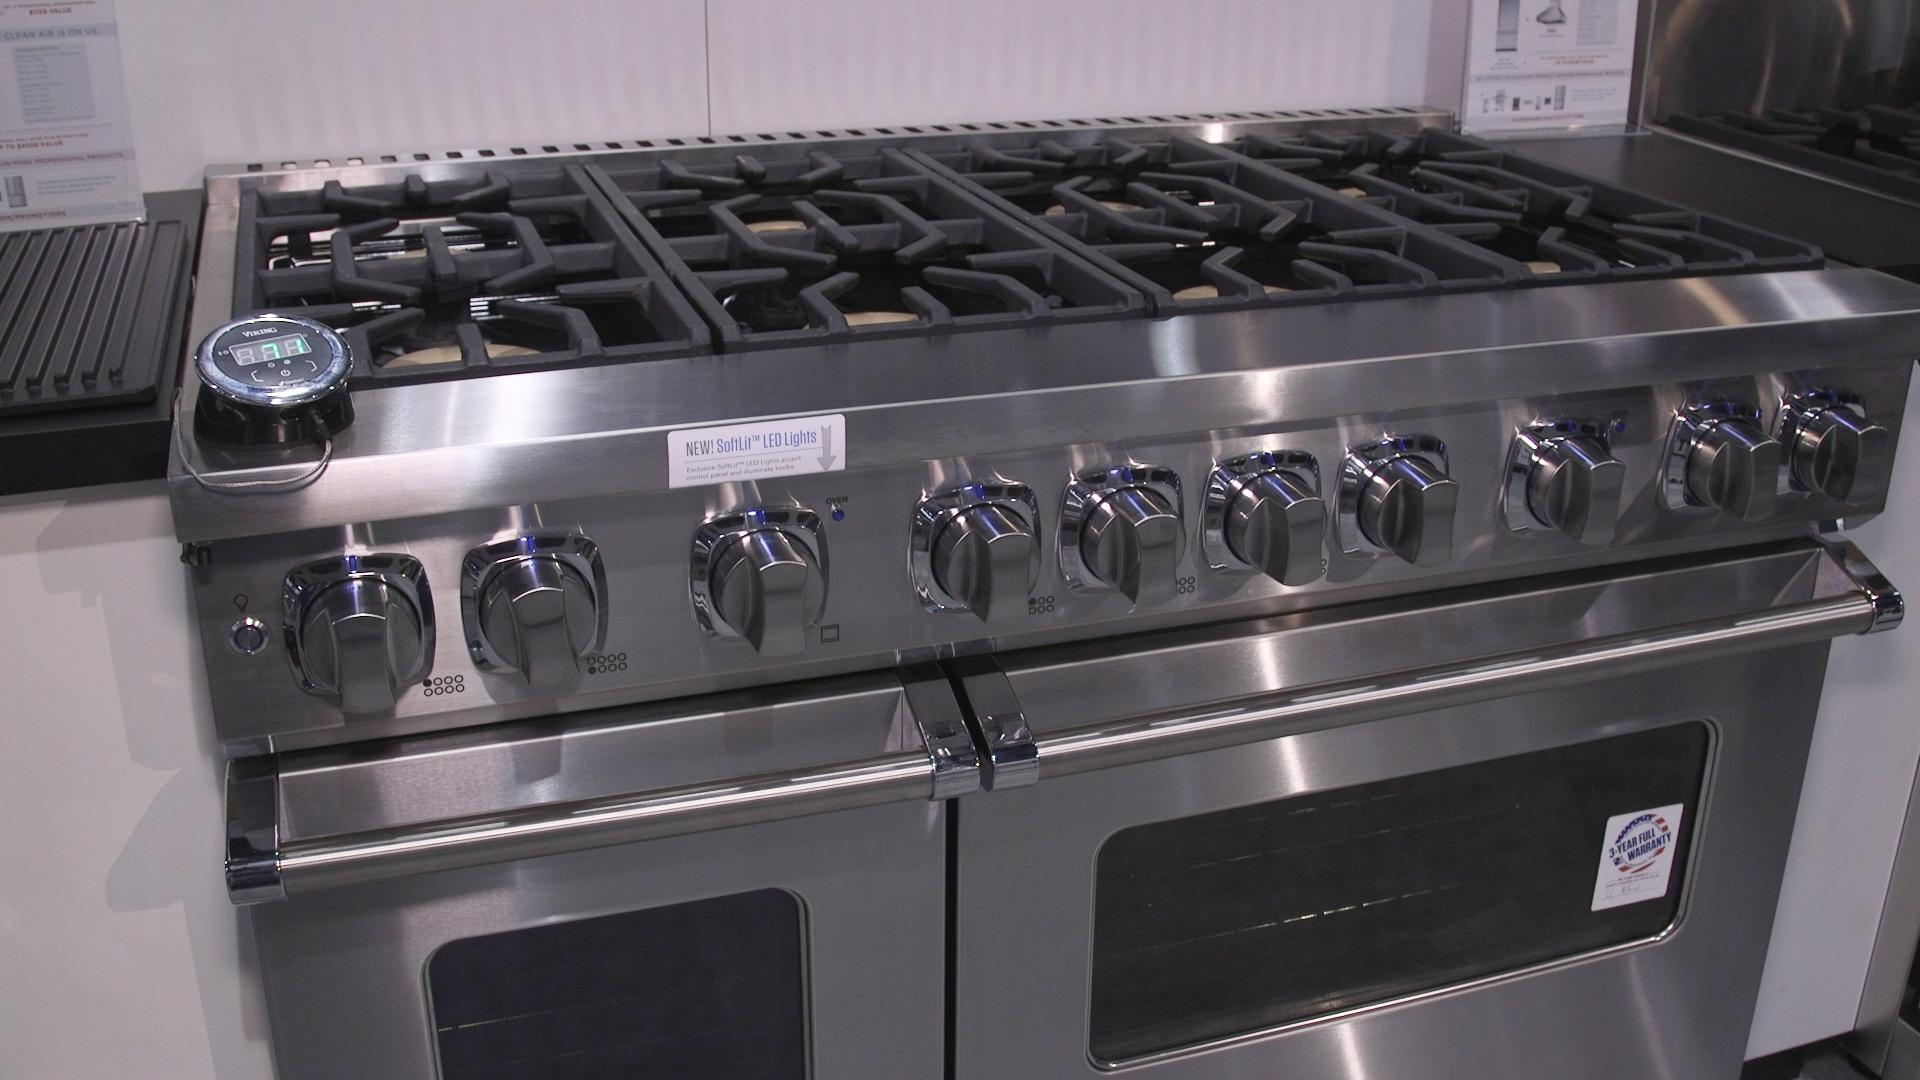 Kitchen Gas Stove The Best Gas Ranges For $1000 Or Less  Consumer Reports